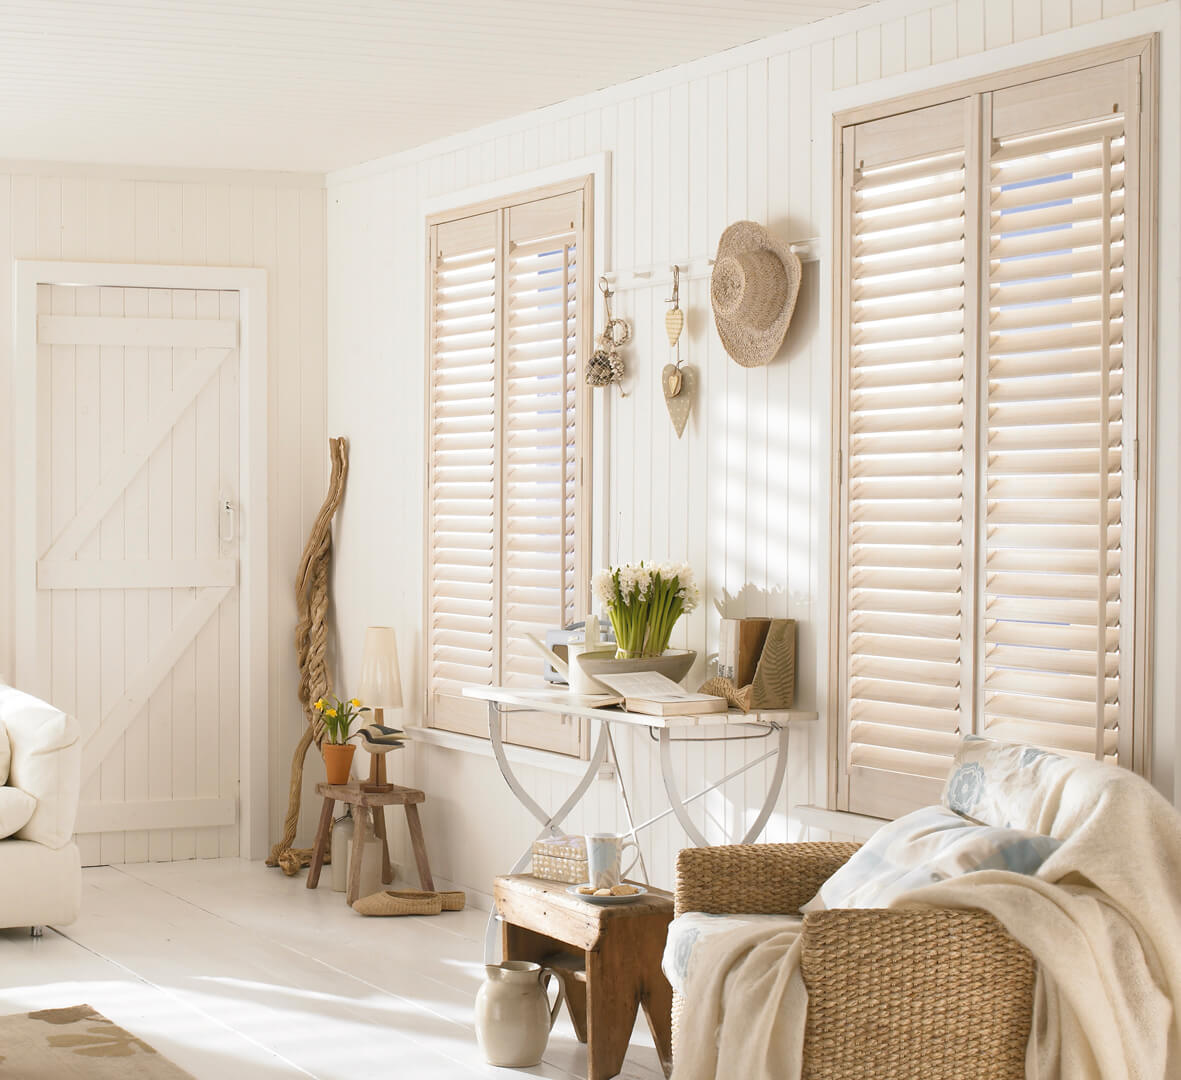 High Quality Made To Measure Blinds In Blackpool